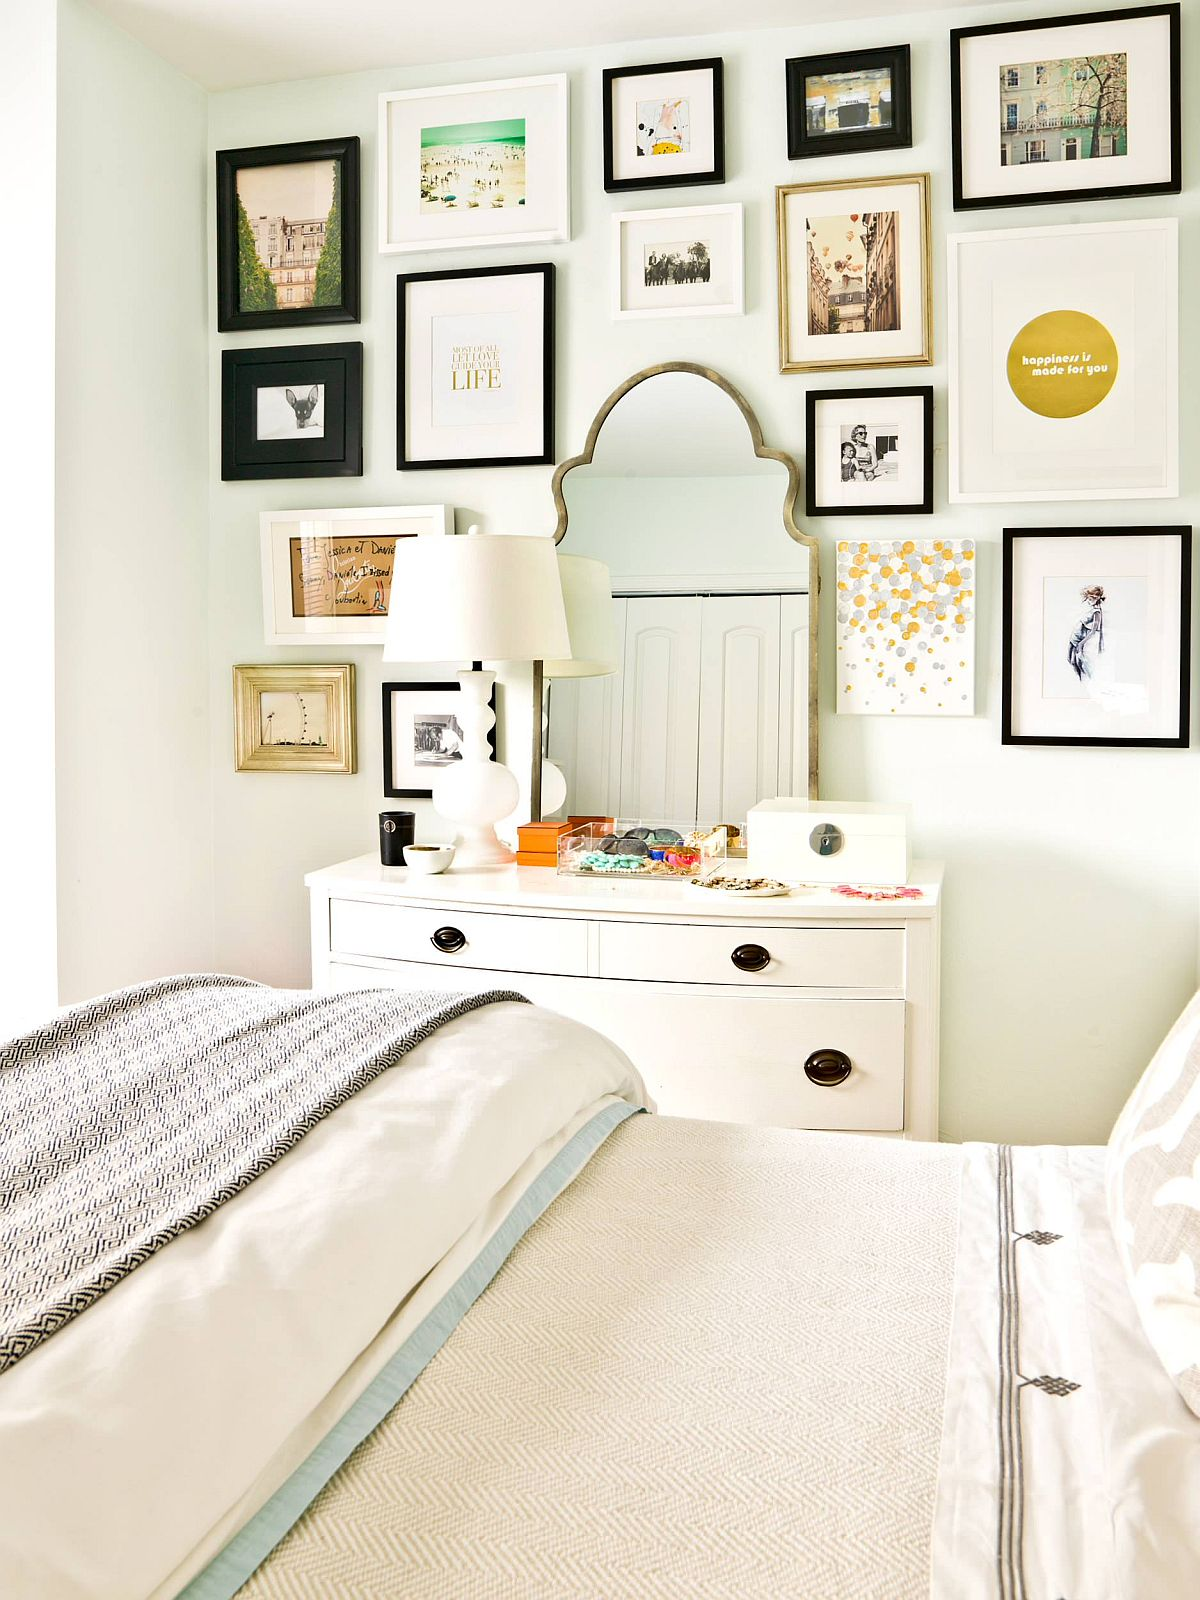 Using the space around the dressing mirror in the bedroom for a lovely gallery wall